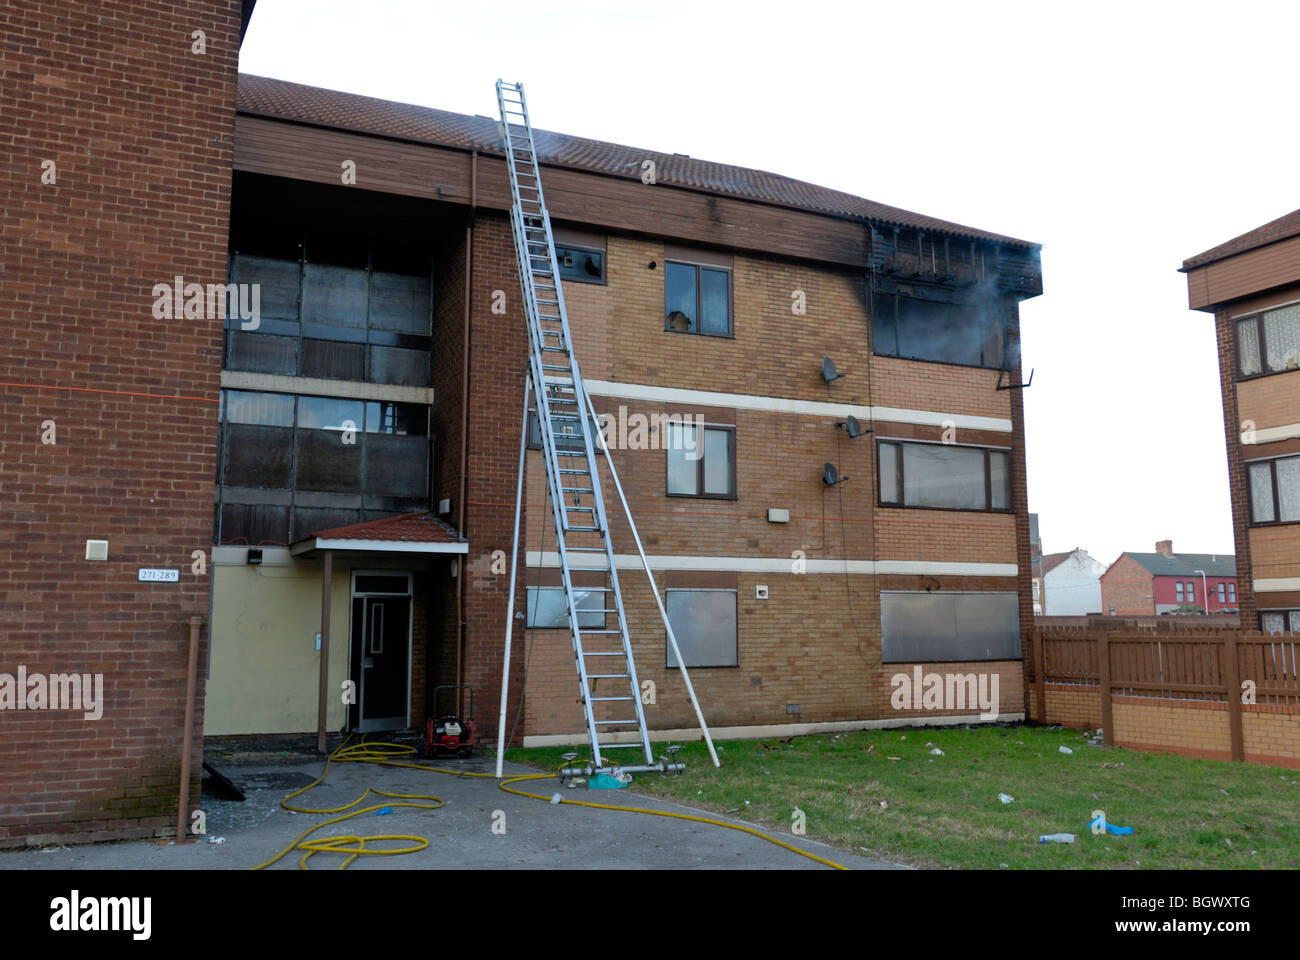 Top floor flat on fire with 135 ladder pitched against wall - Stock Image